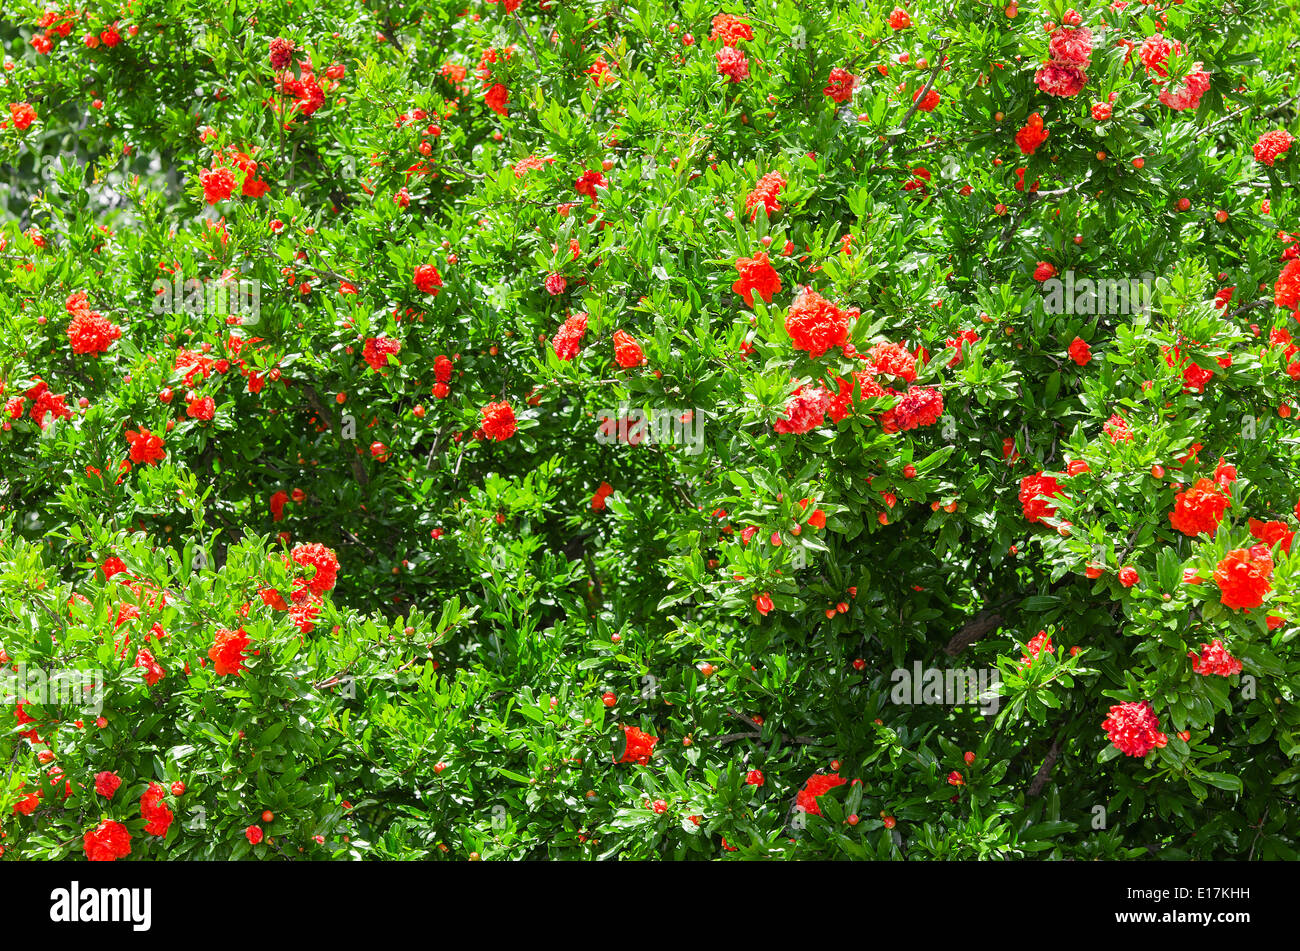 Spring Blooming Japanese Quince Bush With Vivid Red Flowers Stock